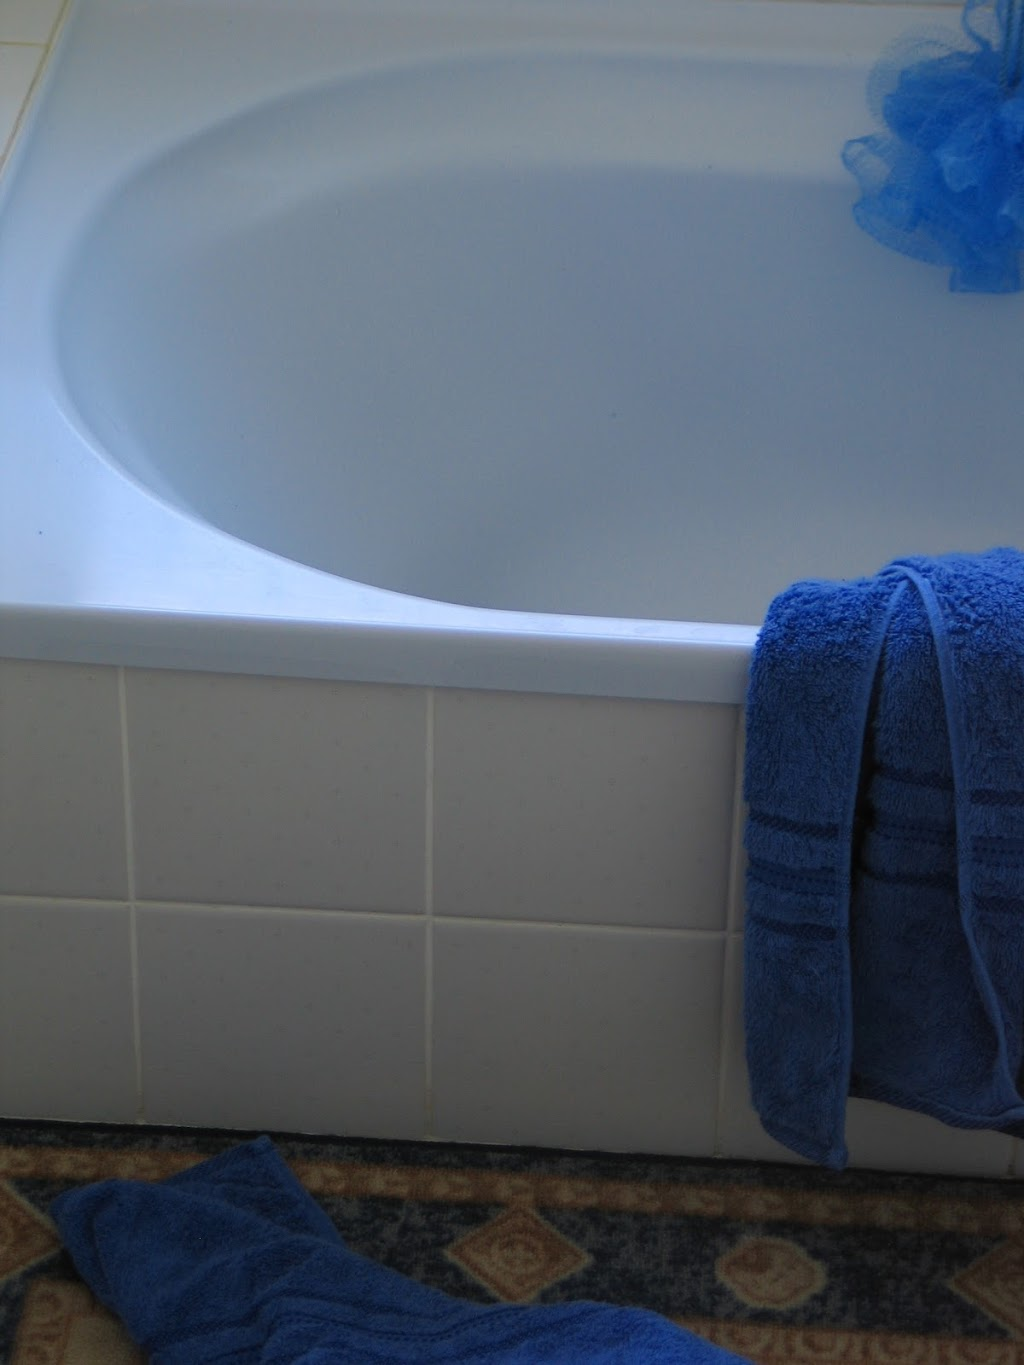 Multisolutions Cleaning - laundry    Photo 10 of 10   Address: 21 Marion Ave, Hartsdale, NY 10530, USA   Phone: (914) 830-2146